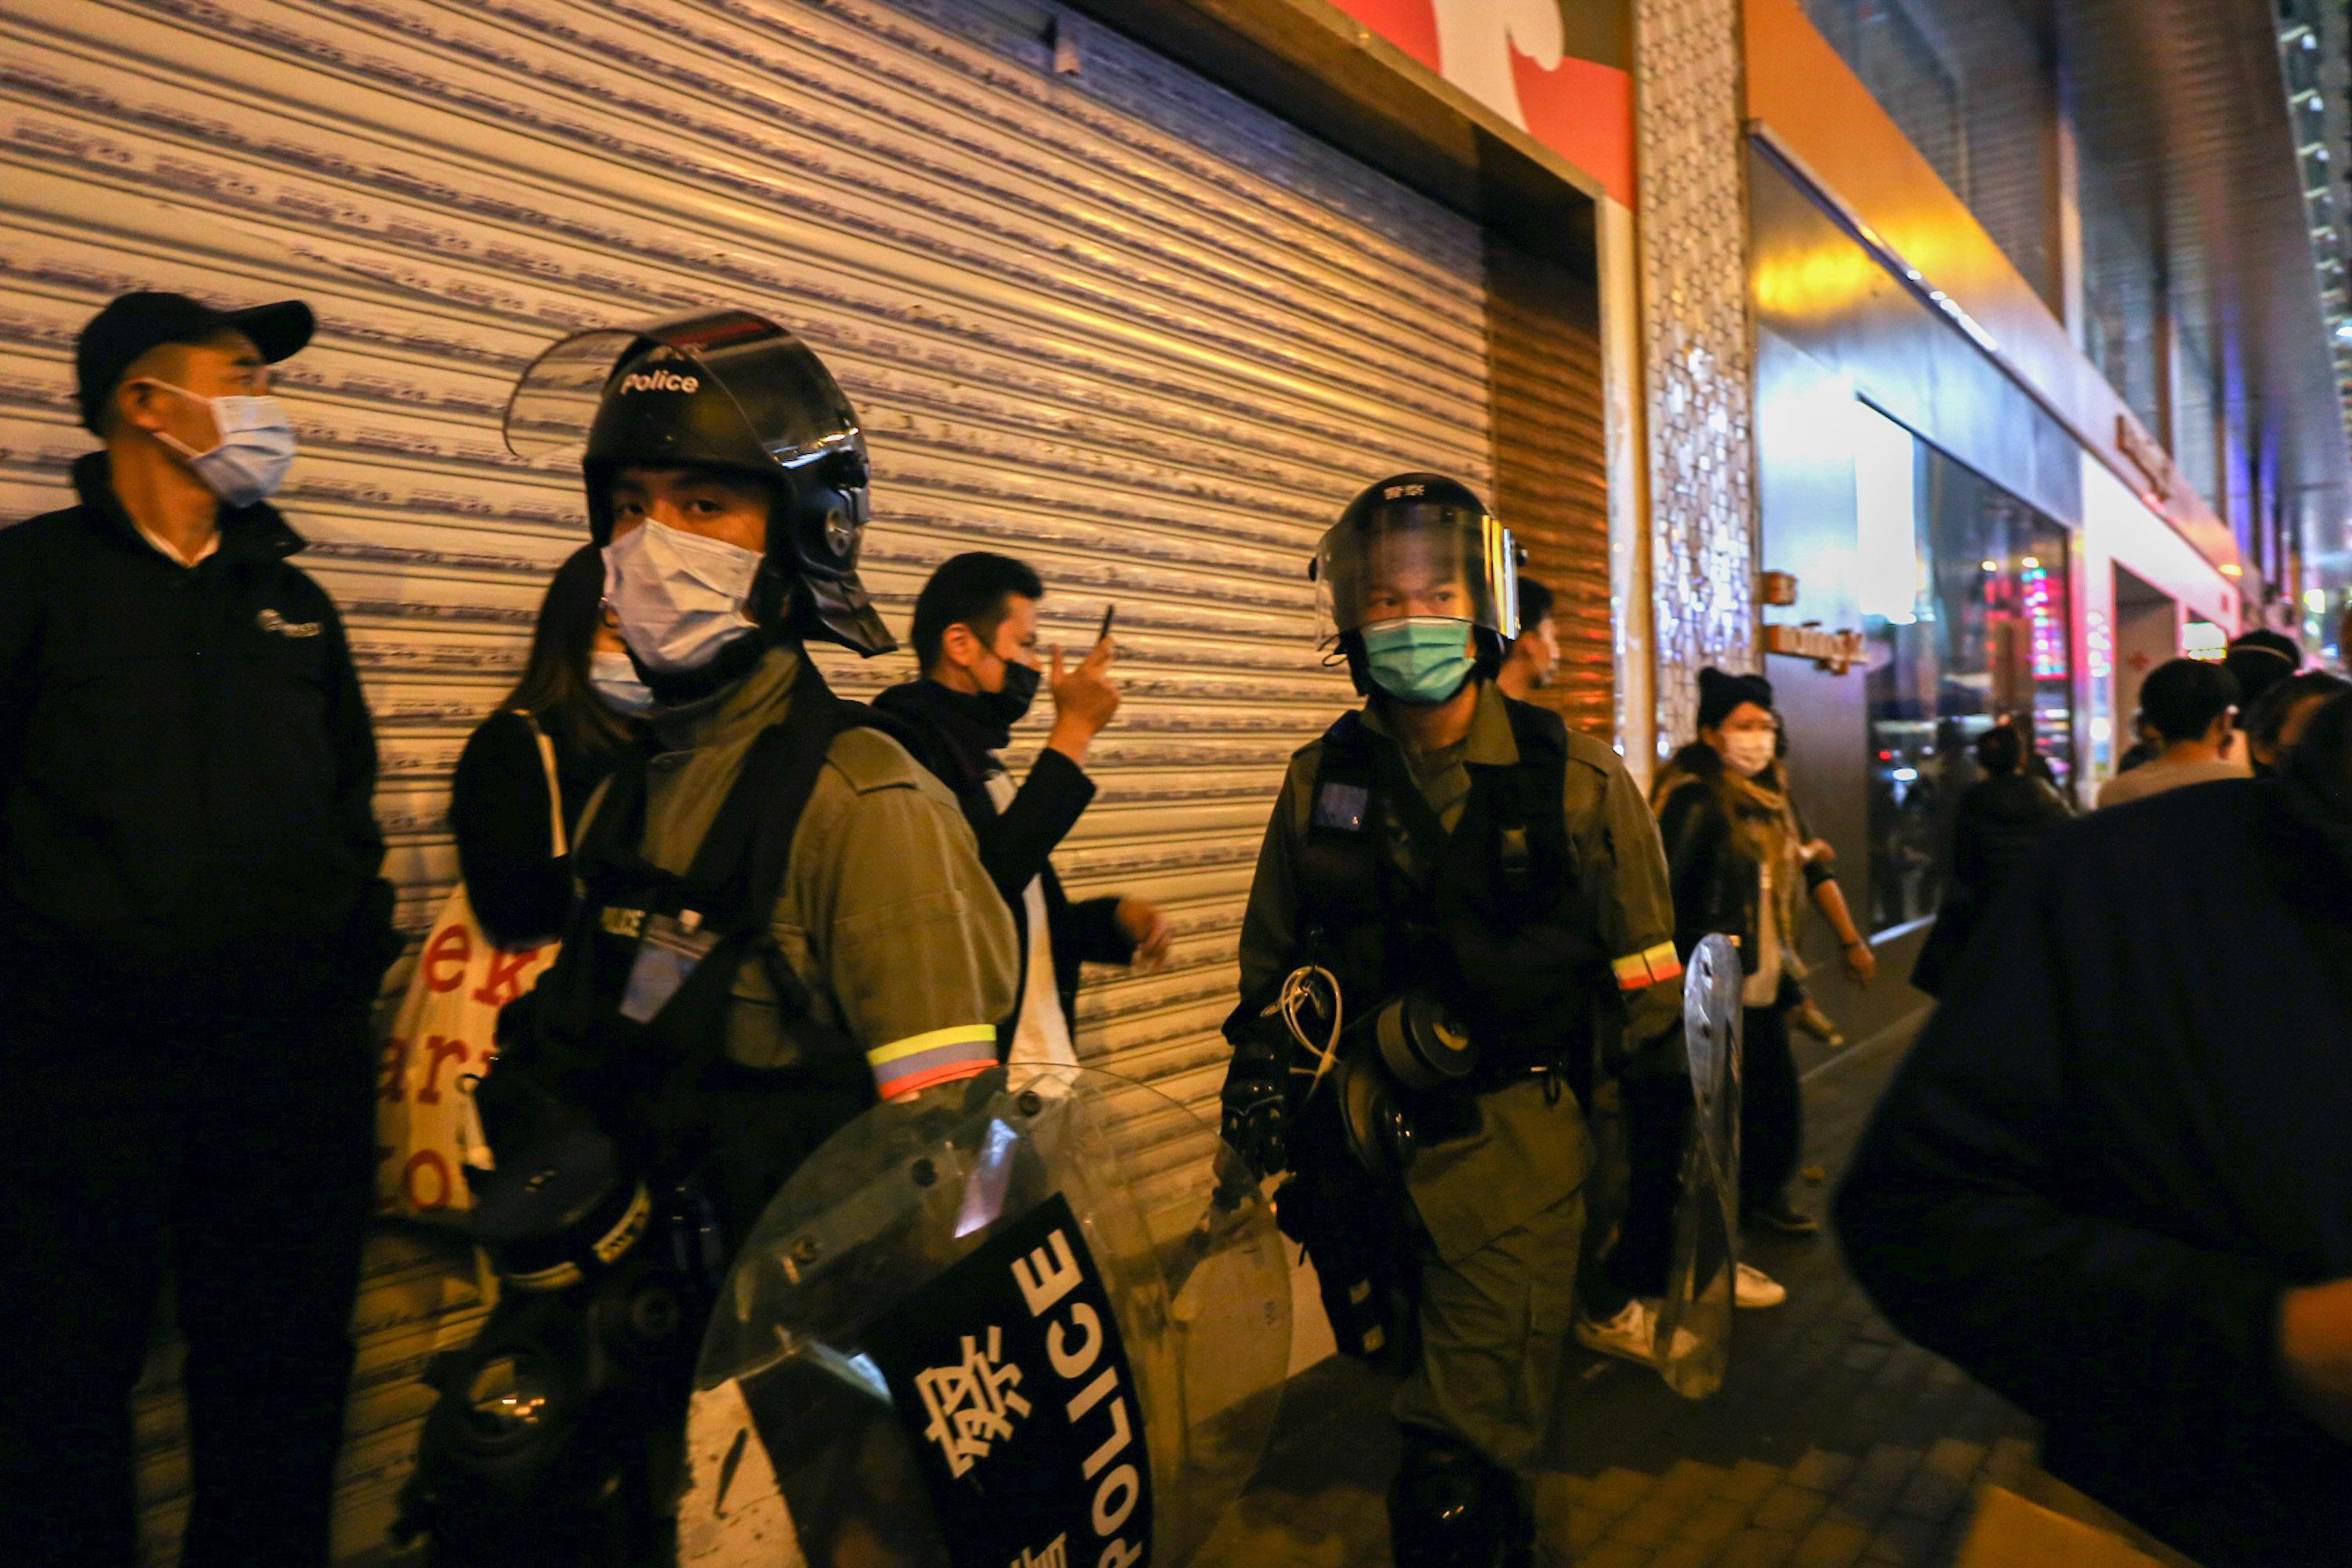 MONG KOK, HONG KONG, CHINA - 2020/01/26: Police during a dispersal mission of Hong Kong protestors wear face masks in addition to their protective gear following reports of the Wuhan Coronavirus appearing in Hong Kong. The Wuhan Coronavirus is a new and highly infectious SARS-strain virus that originated in the Hubei province of China, and has been traced back to an animal market in the city of Wuhan. (Photo by Katherine Cheng/SOPA Images/LightRocket via Getty Images)